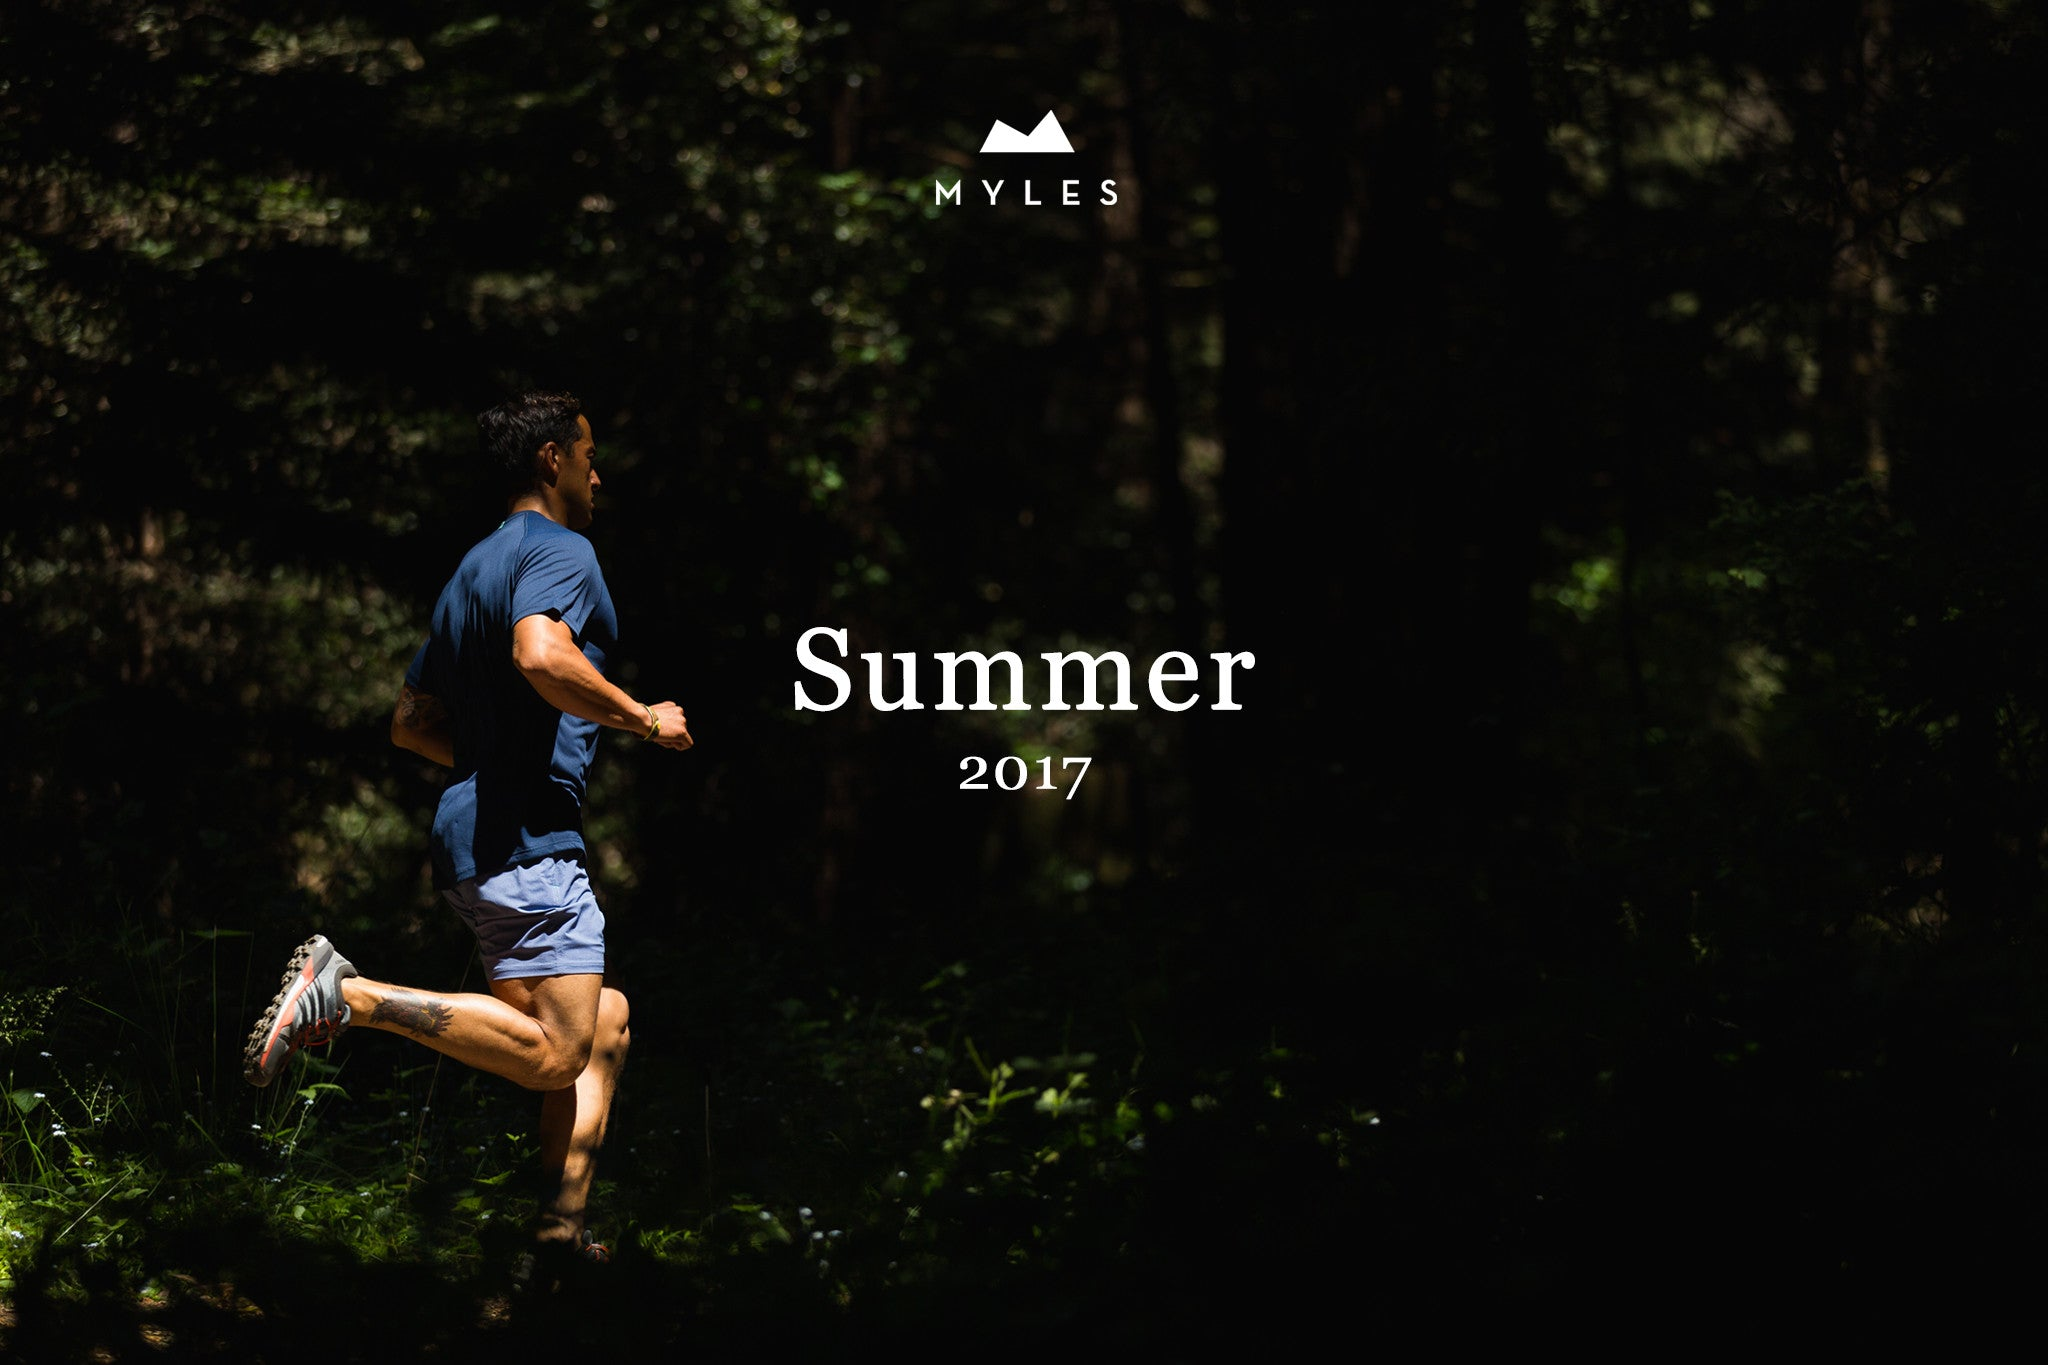 a9a1e221f396aa We started Myles because we believe activewear should go far beyond the  gym. So we set out to design timeless styles reimagined with cutting-edge  ...